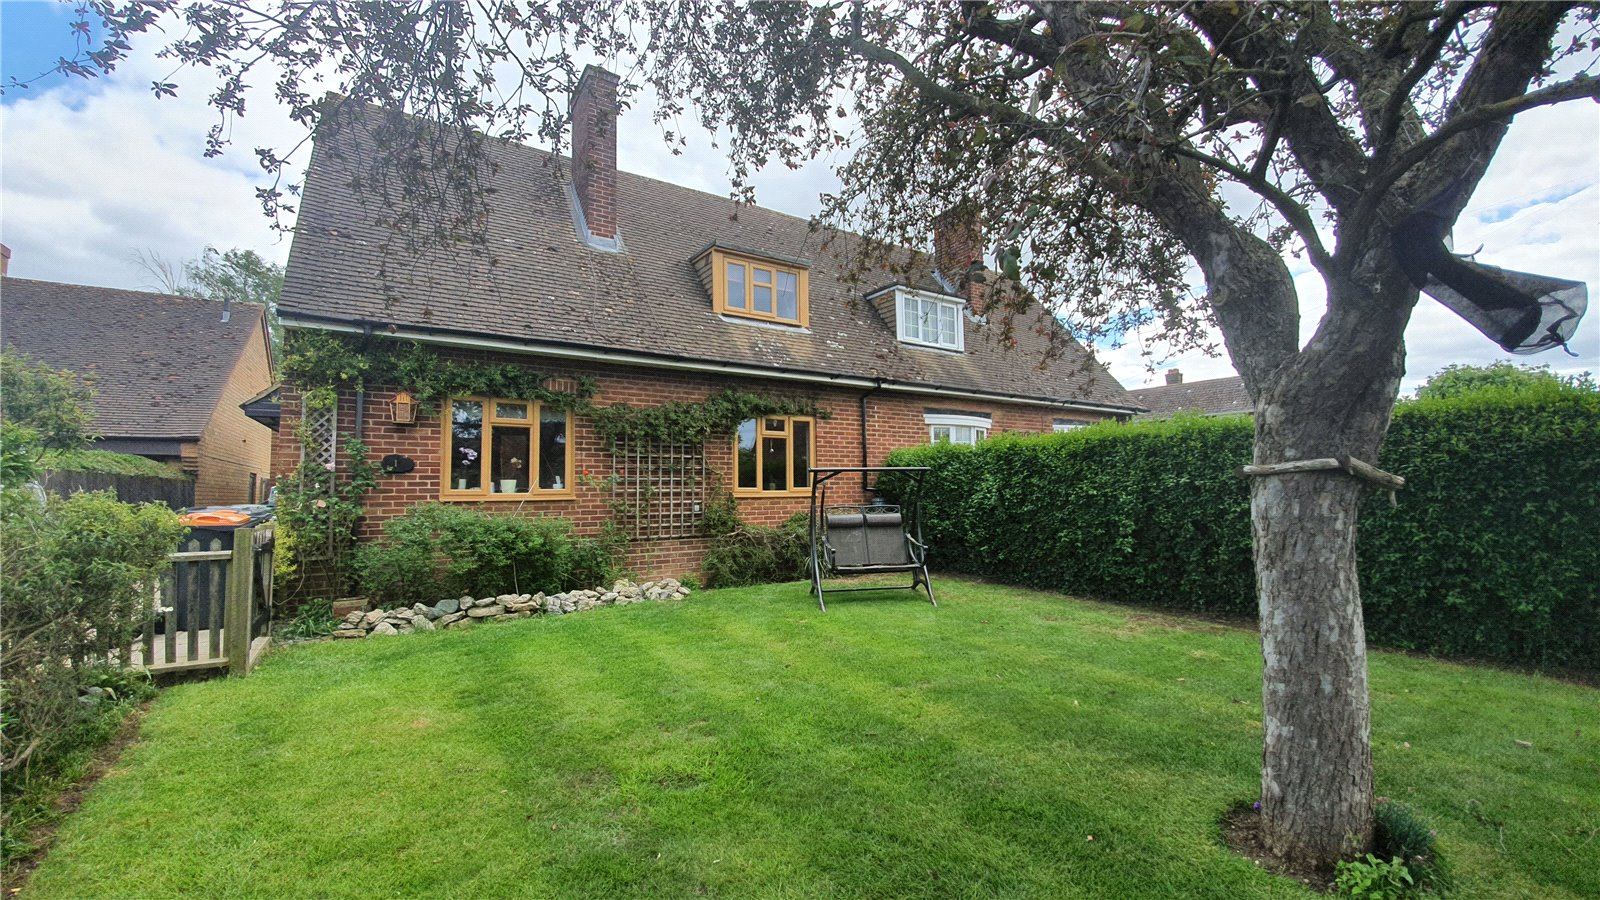 4 bed house for sale in Roxton, MK44